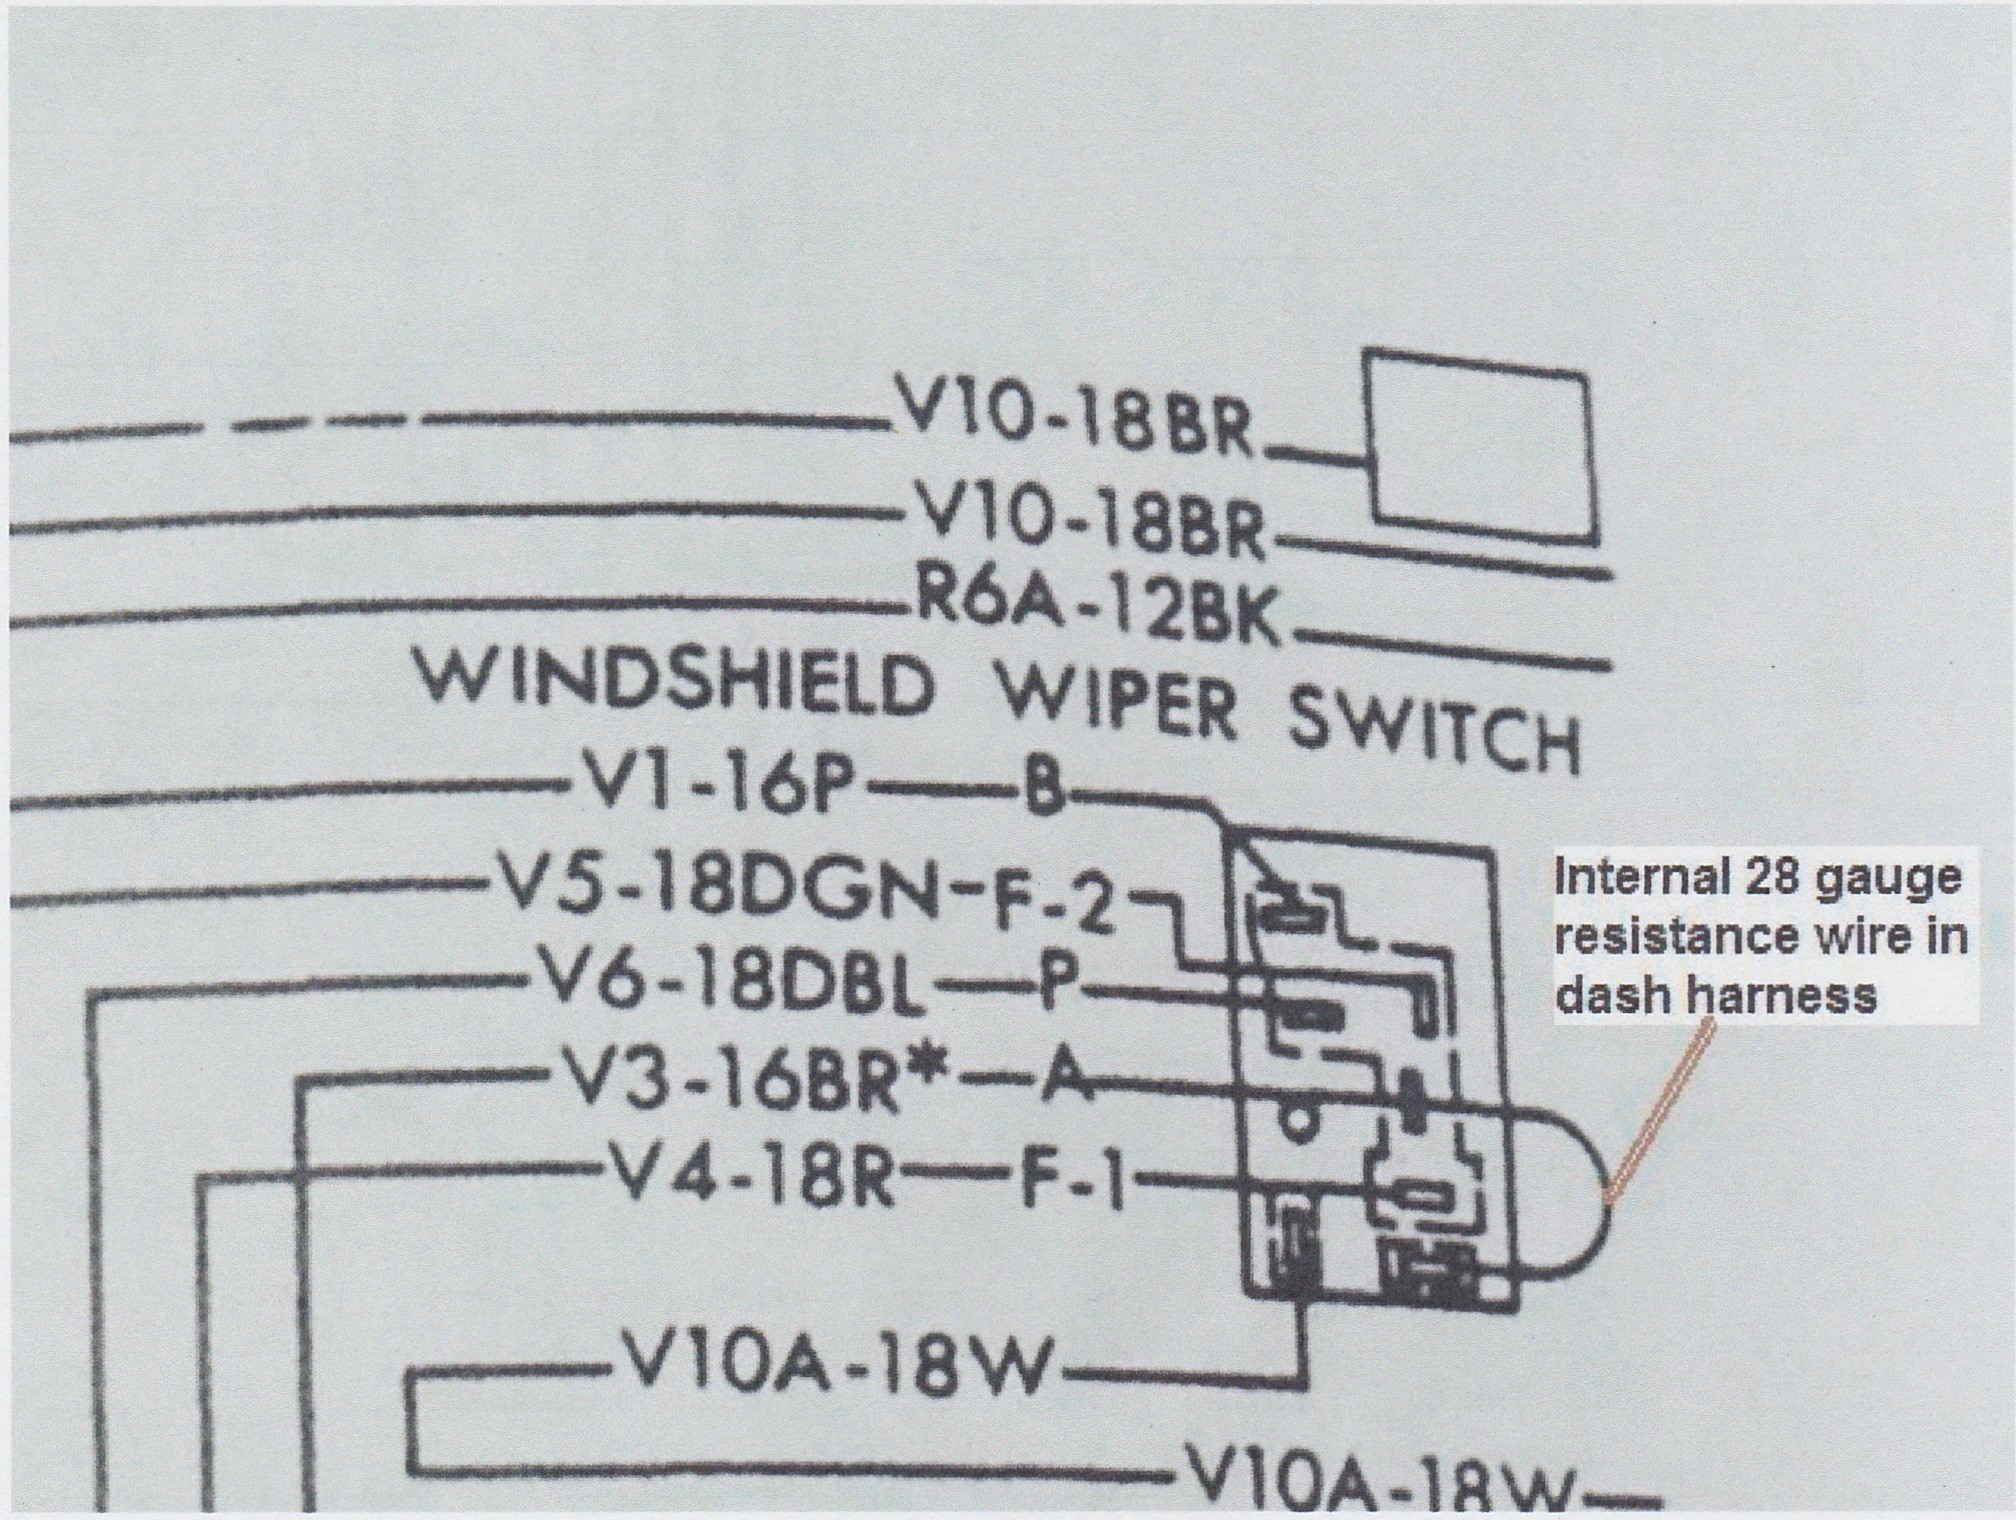 Mopar Wiper Switch Wiring Diagram Free For You Windshield Moparts Restoration A12 Forum Forums Get American Auto Wire 2 Speed Motor